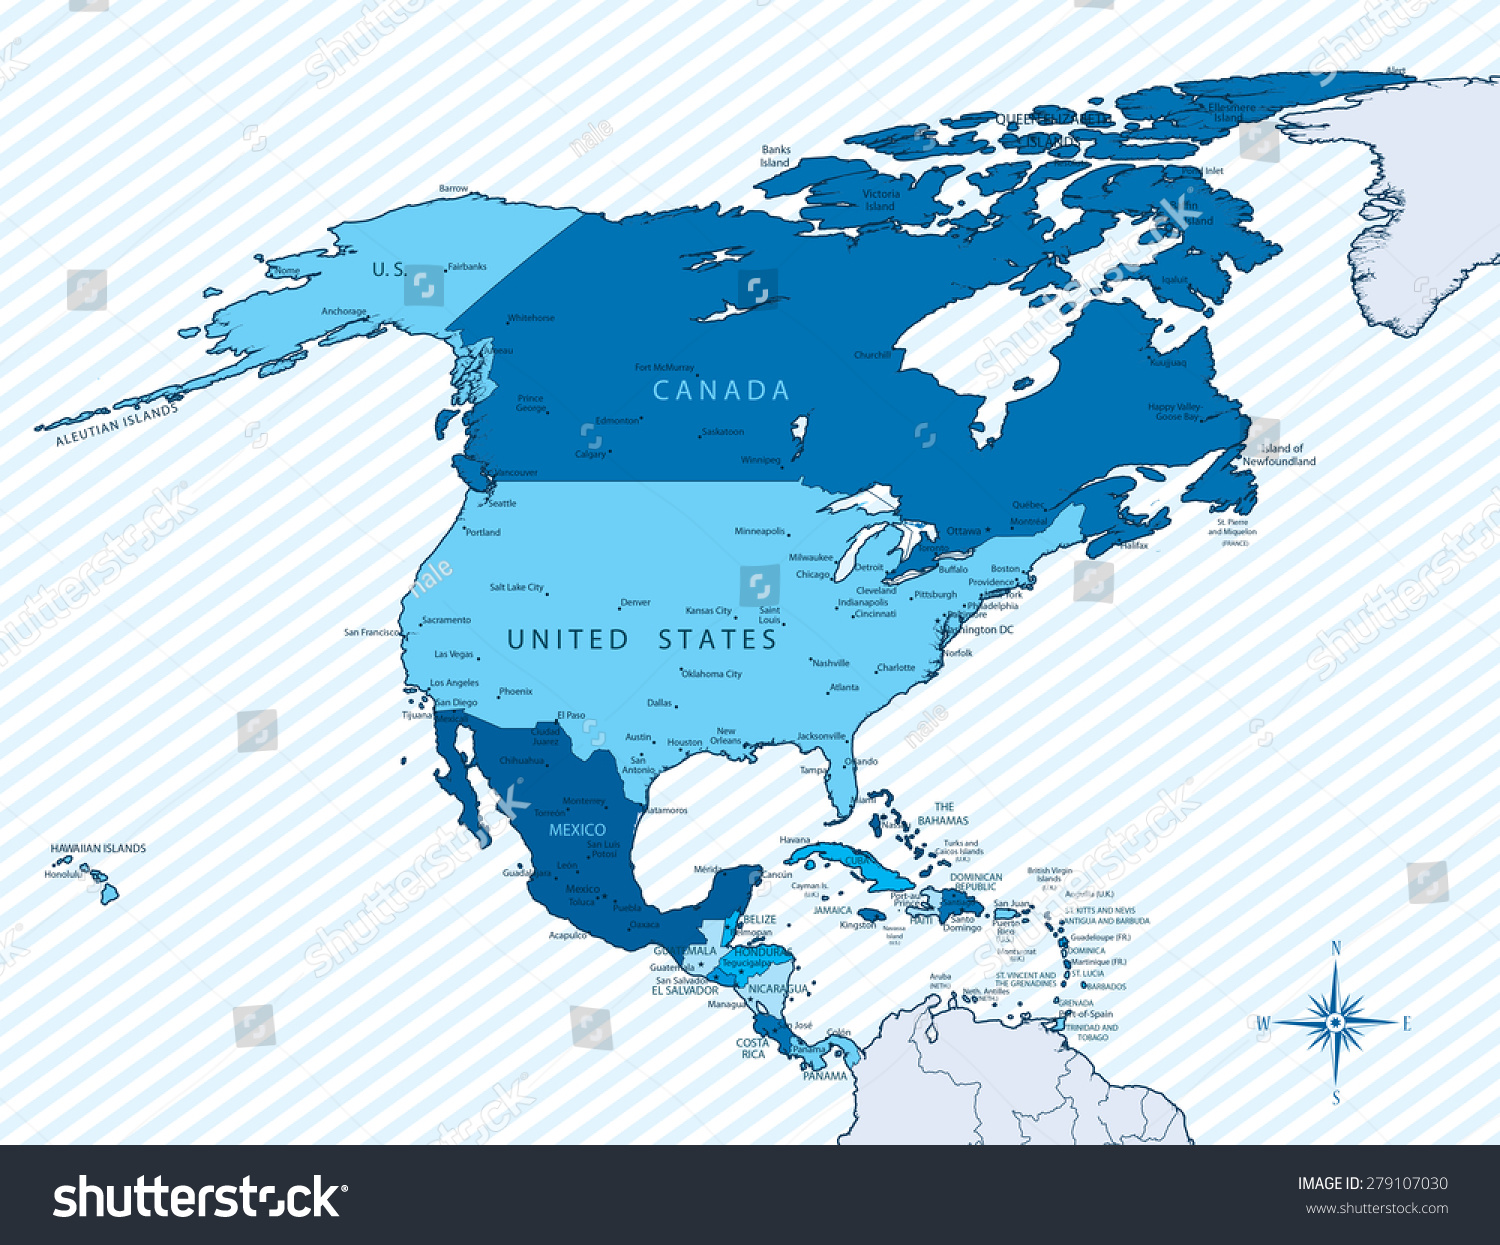 Vector Ilration Of North America Map With Countries In Blue Color Each Country Has Its